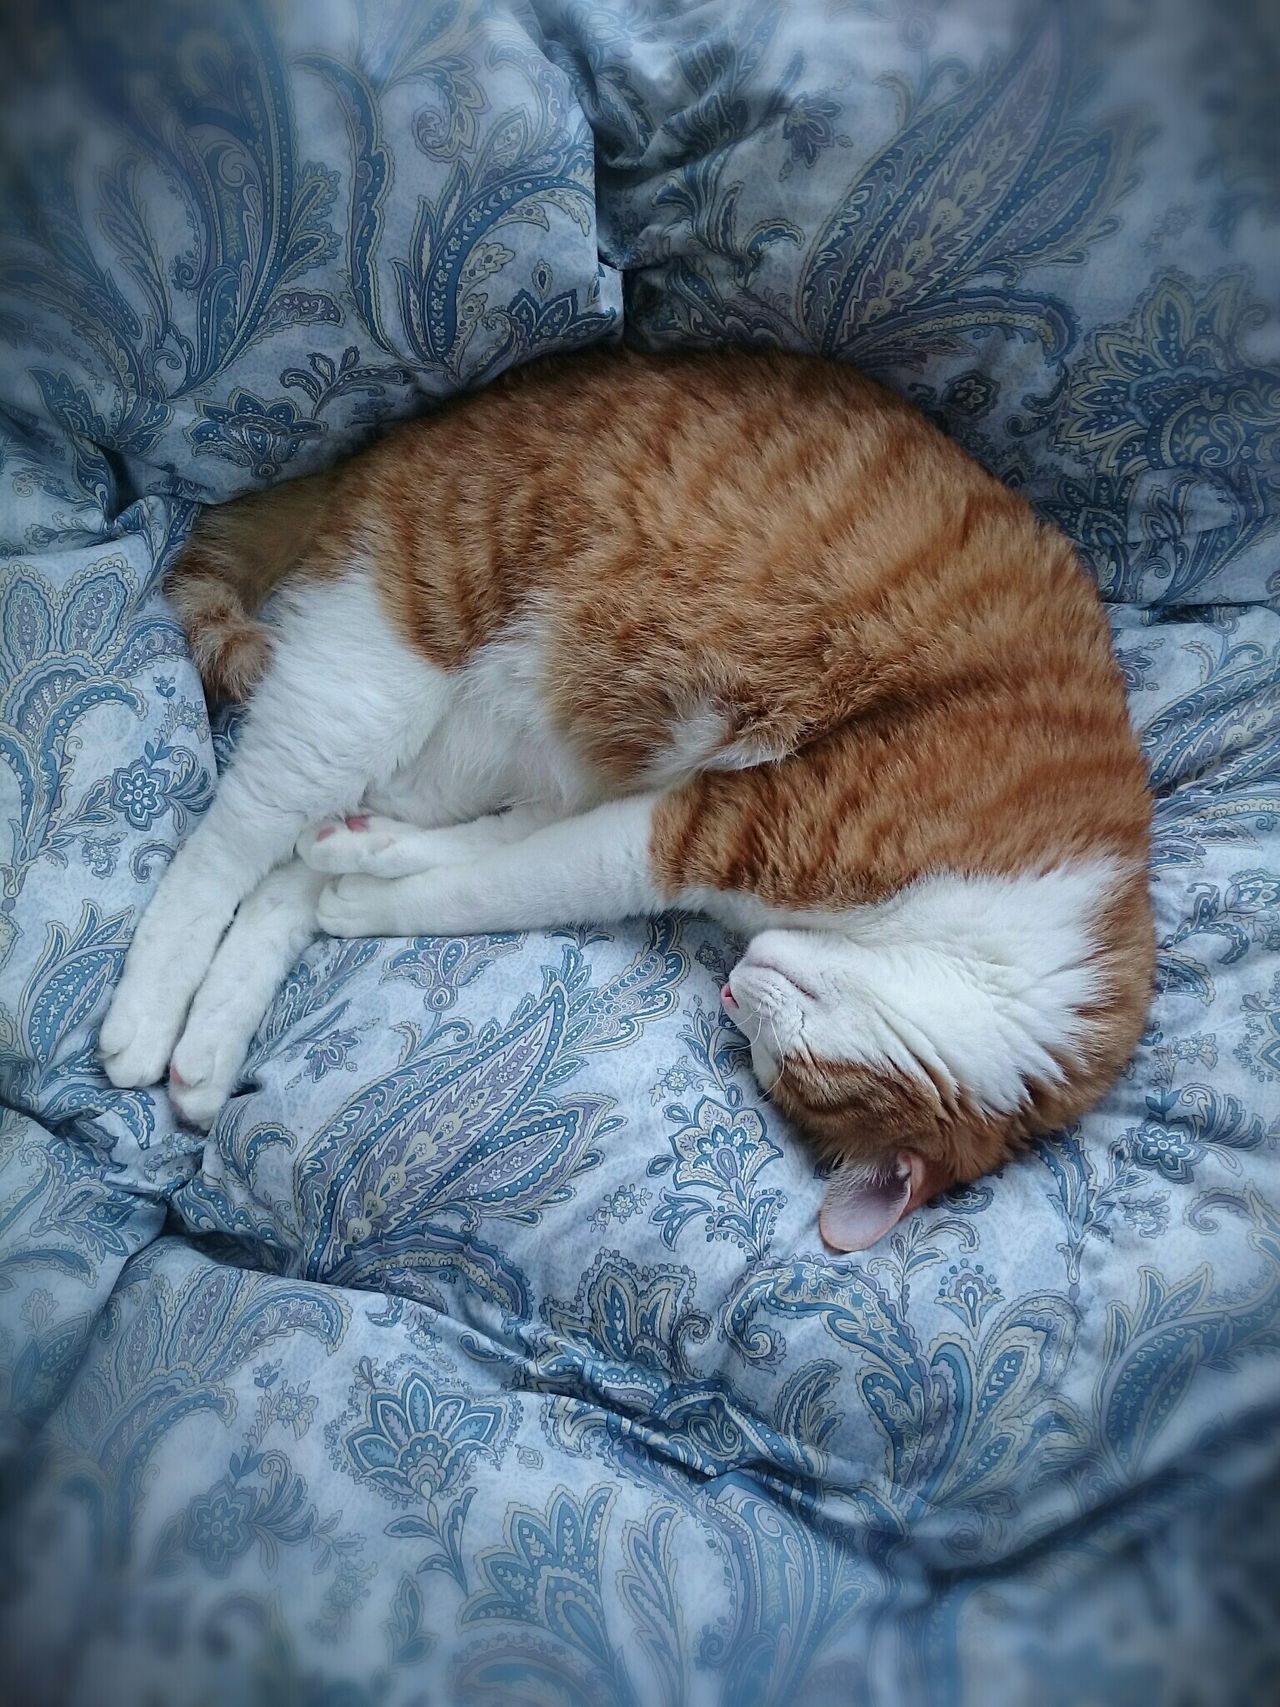 dreaming. Relaxation Sleeping Animal Themes Pets Domestic Animals Domestic Cat Bed Portrait Cat Watching Catholic Catstagram Cat Lovers Cats Of EyeEm Catoftheday Animal Photography Catportrait Ilovecats Catboy Cat Photography Cats 🐱 Mycat♥ Japanesecat Red_tabby Japan Scenery Tokyo Days